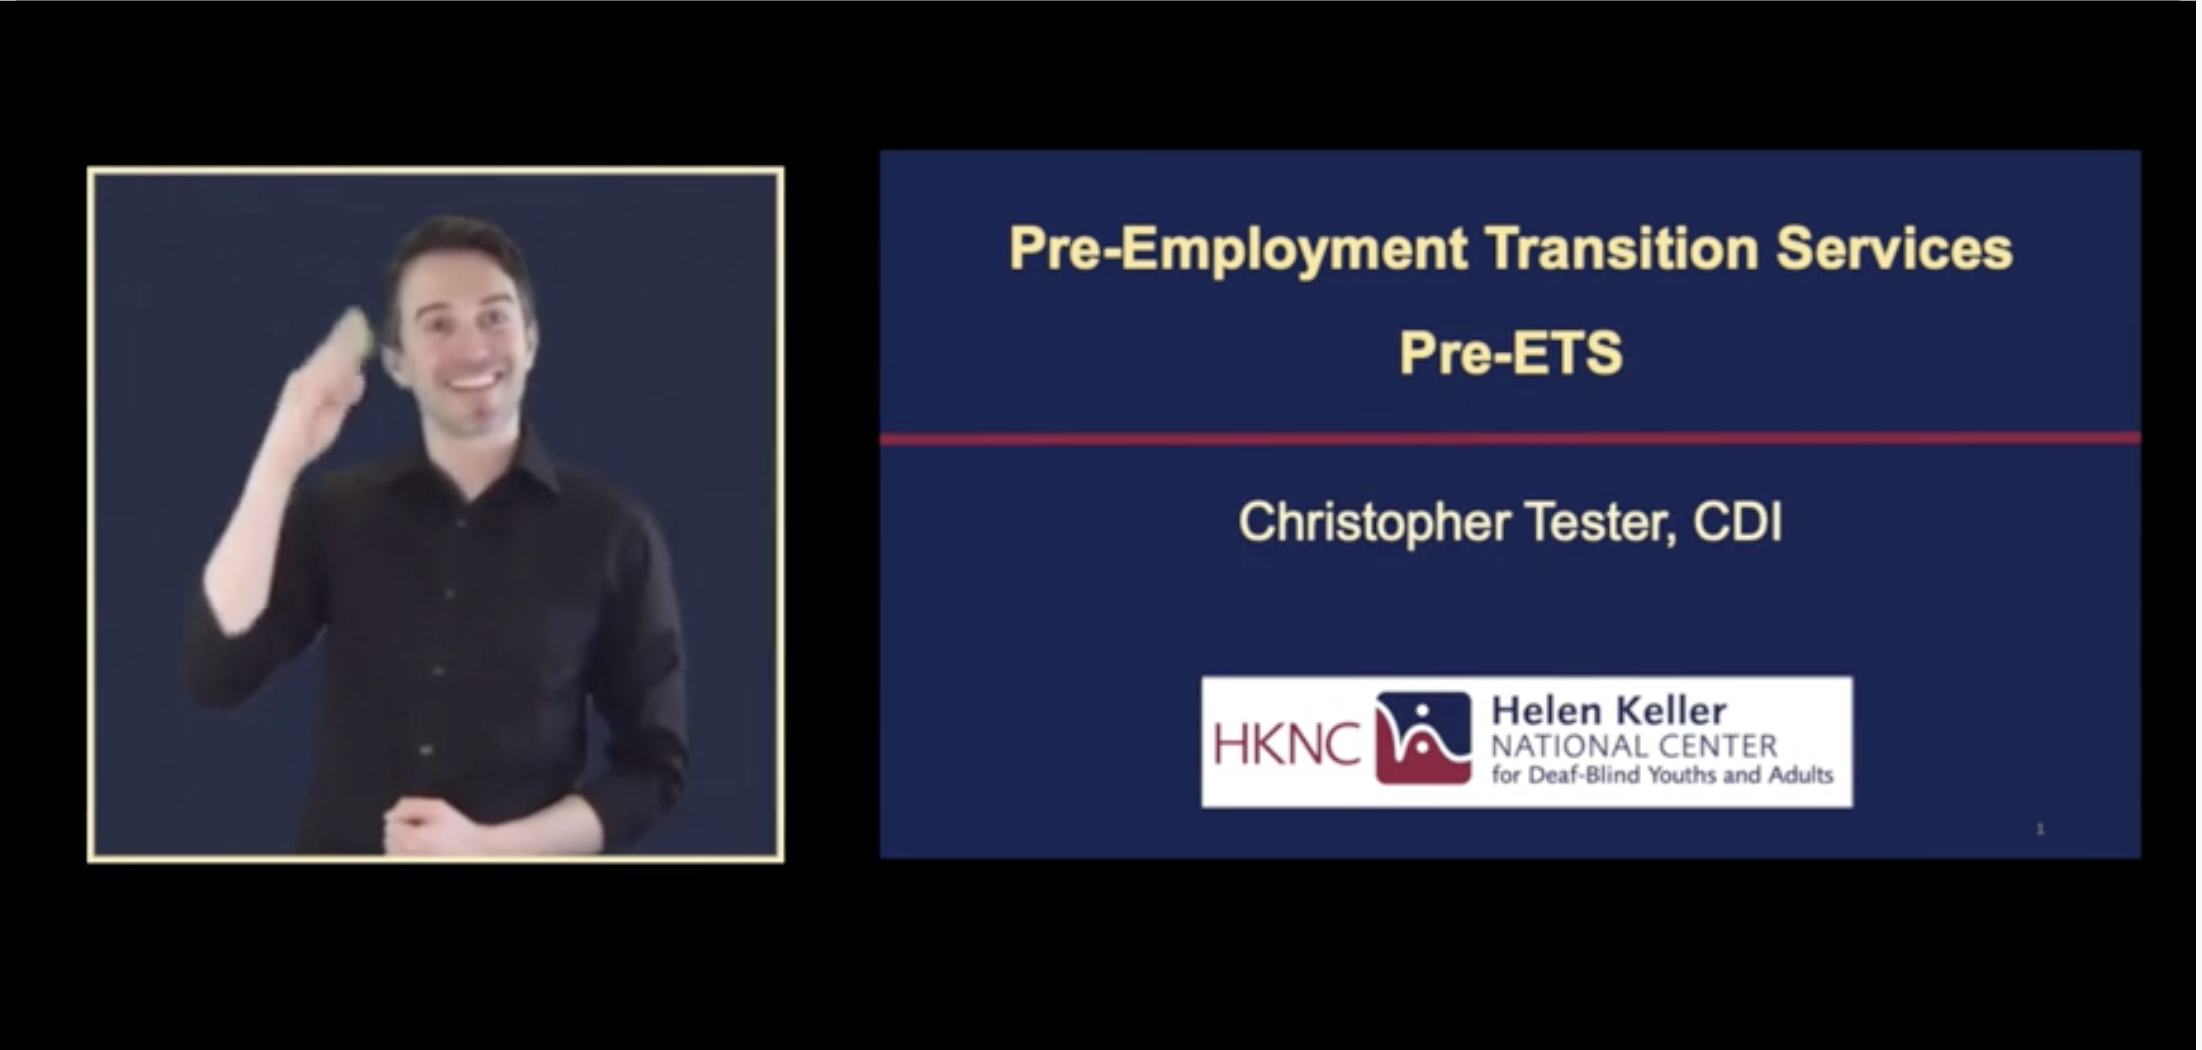 A man signing into the camera is on the left side of the screen. To his right is a power point slide that reads Pre-Employment Transition Services (Pre-ETS) Christopher Tester, CDI Helen Keller National Center